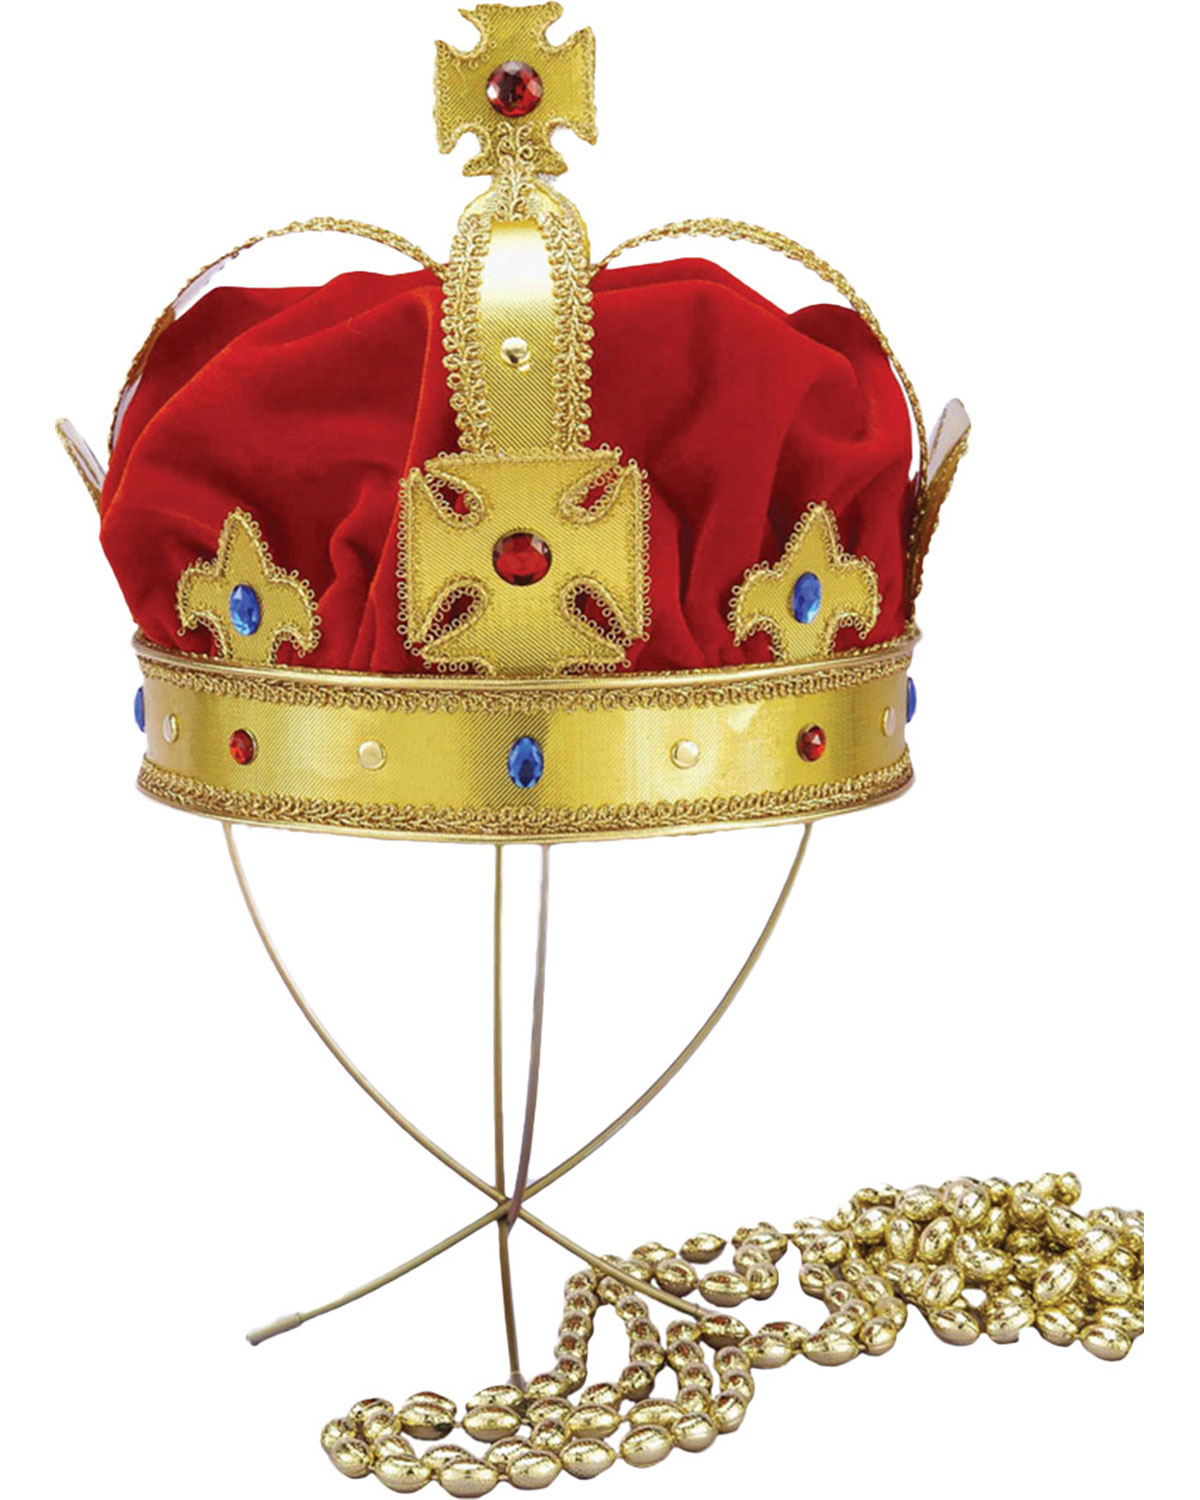 Morris Costumes Women/'s Medieval Queen Plastic Gold Crown Adult EL290224